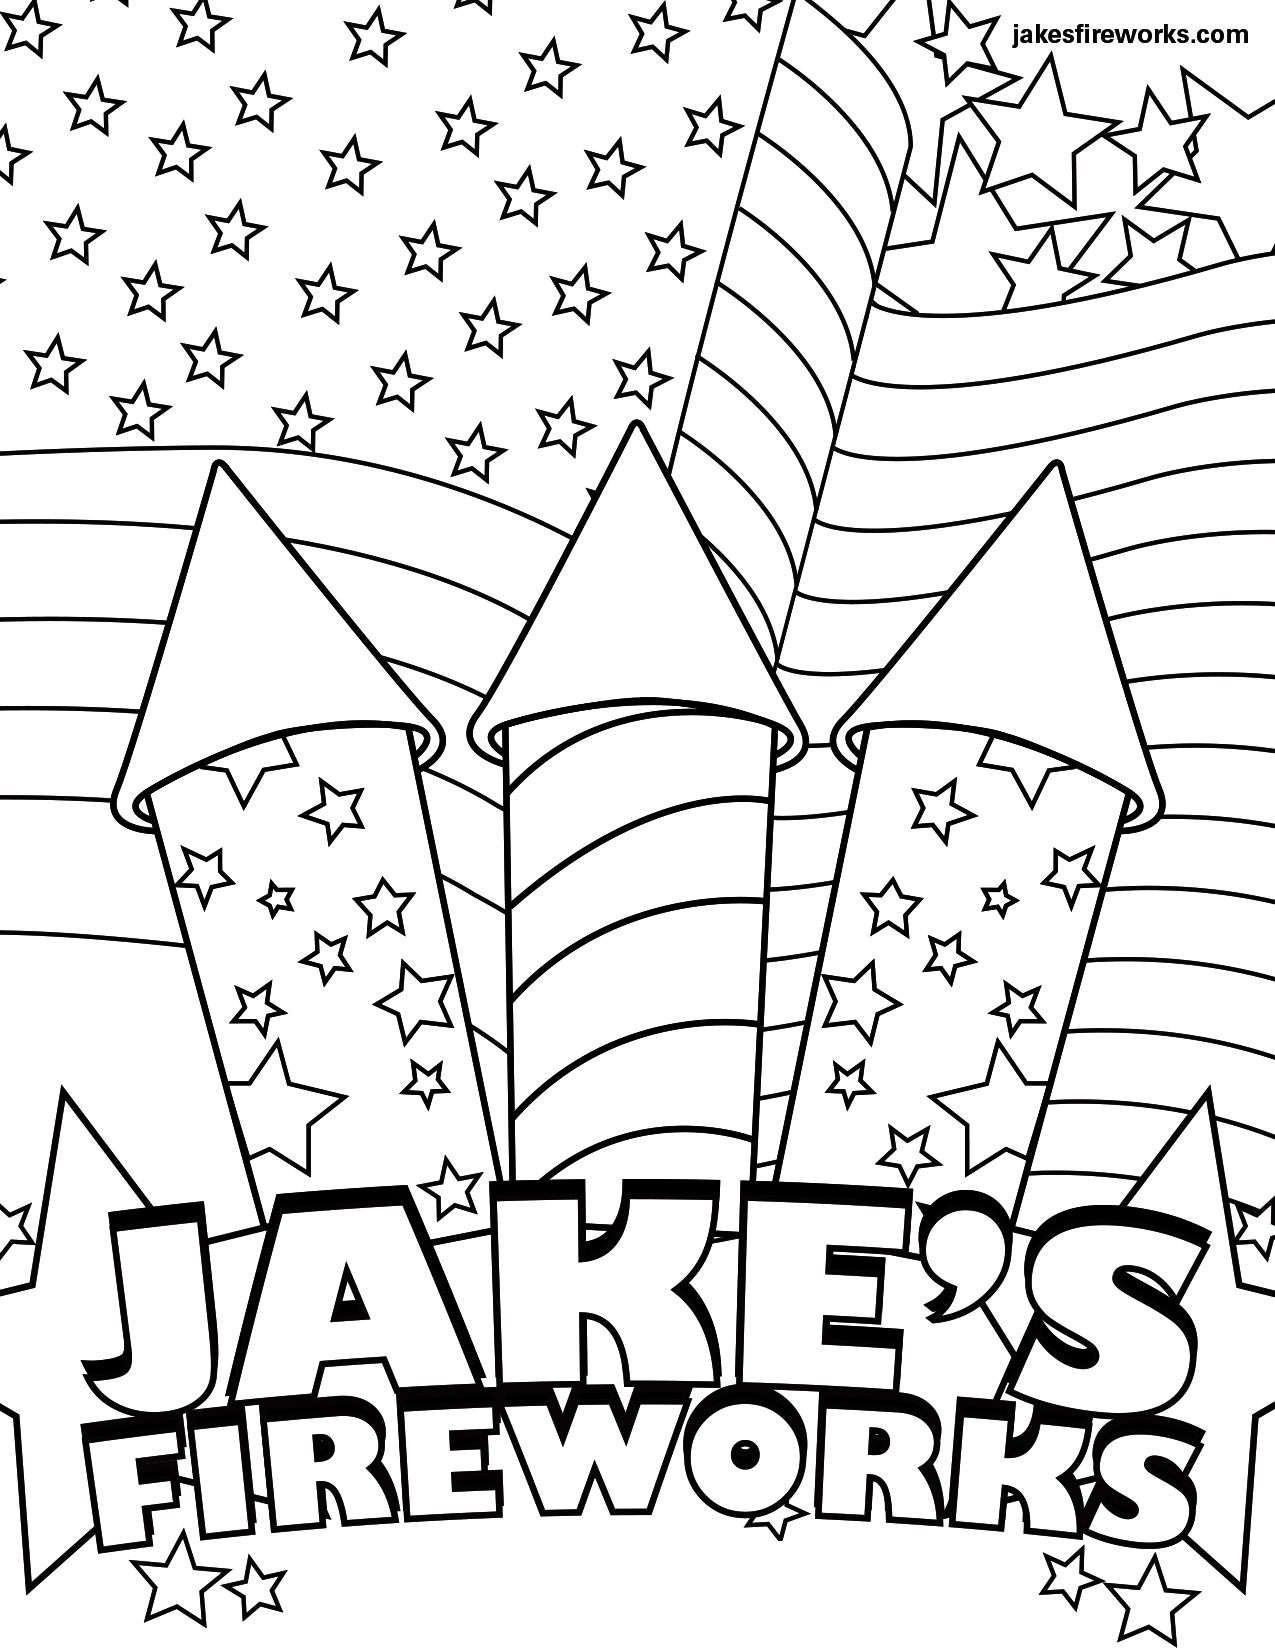 coloring page of fireworks free printable fireworks coloring pages for kids fireworks of page coloring